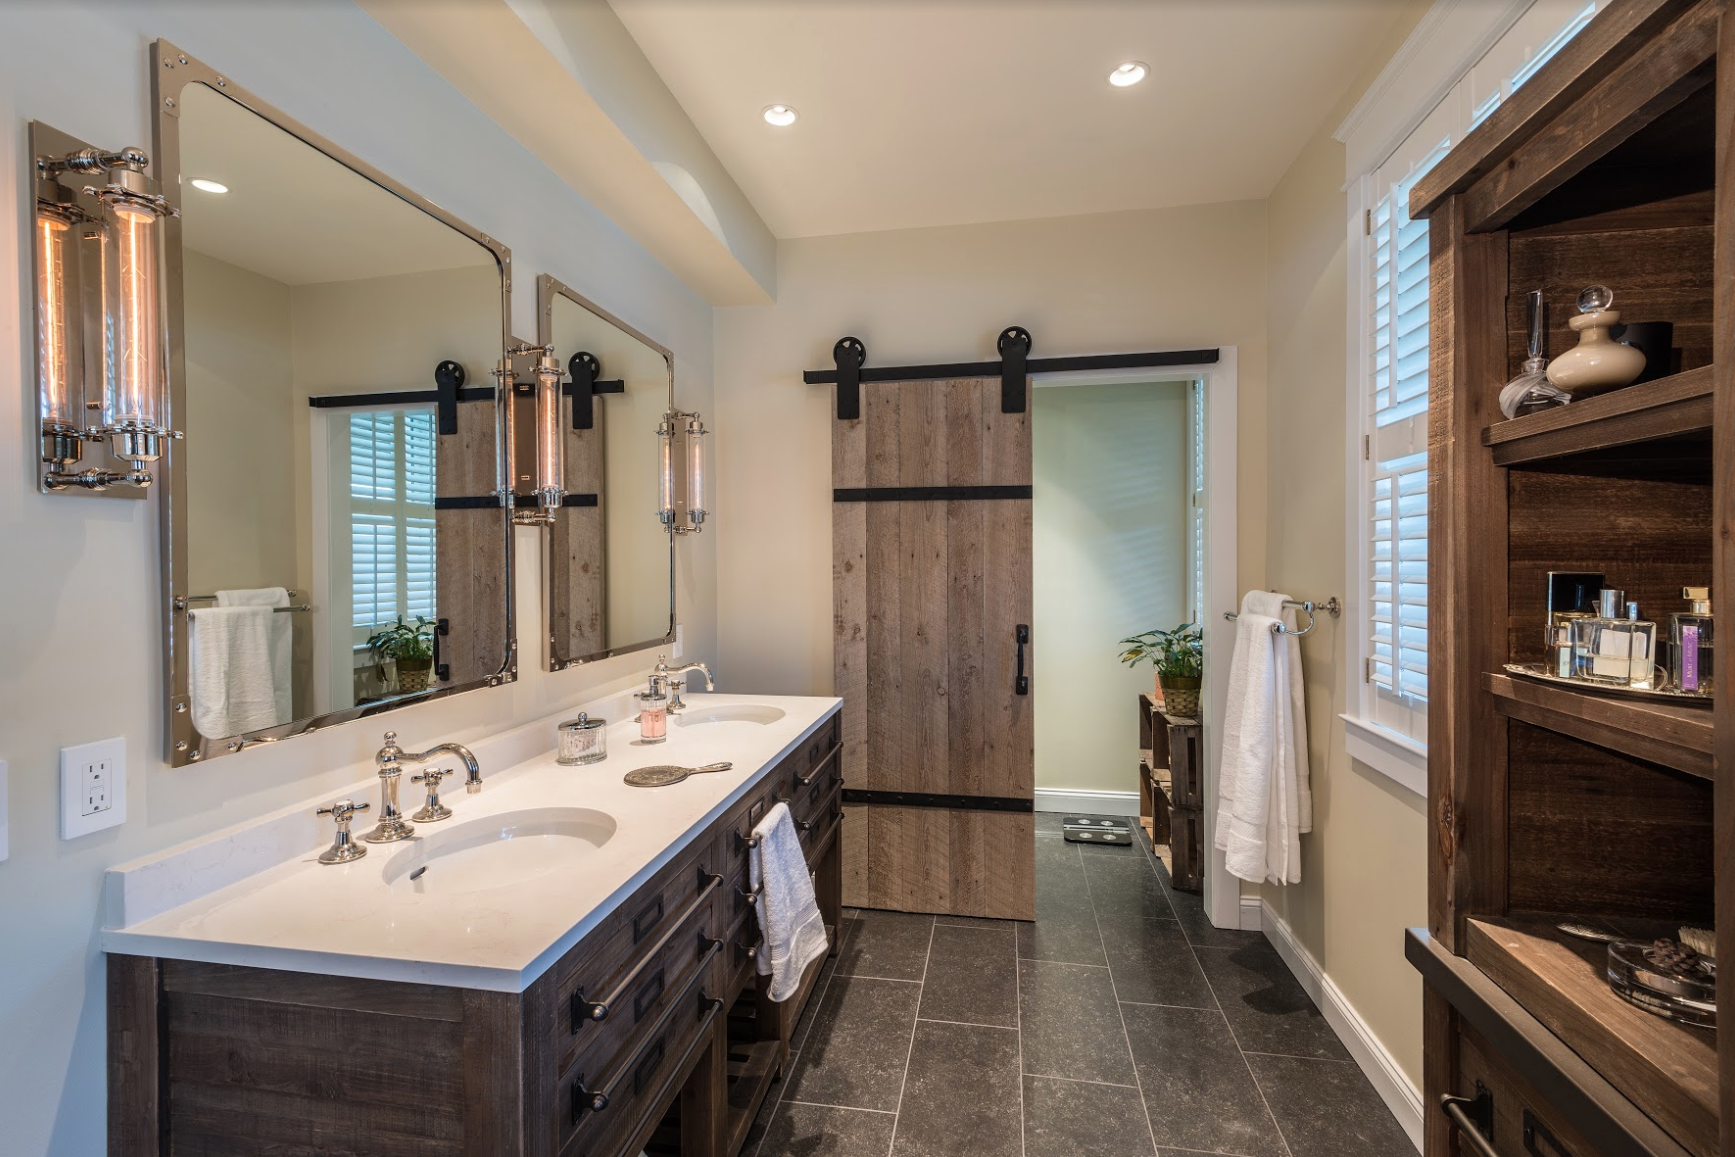 Bathroom Remodeling Northern Virginia Home Fronts News - Bathroom remodeling northern virginia